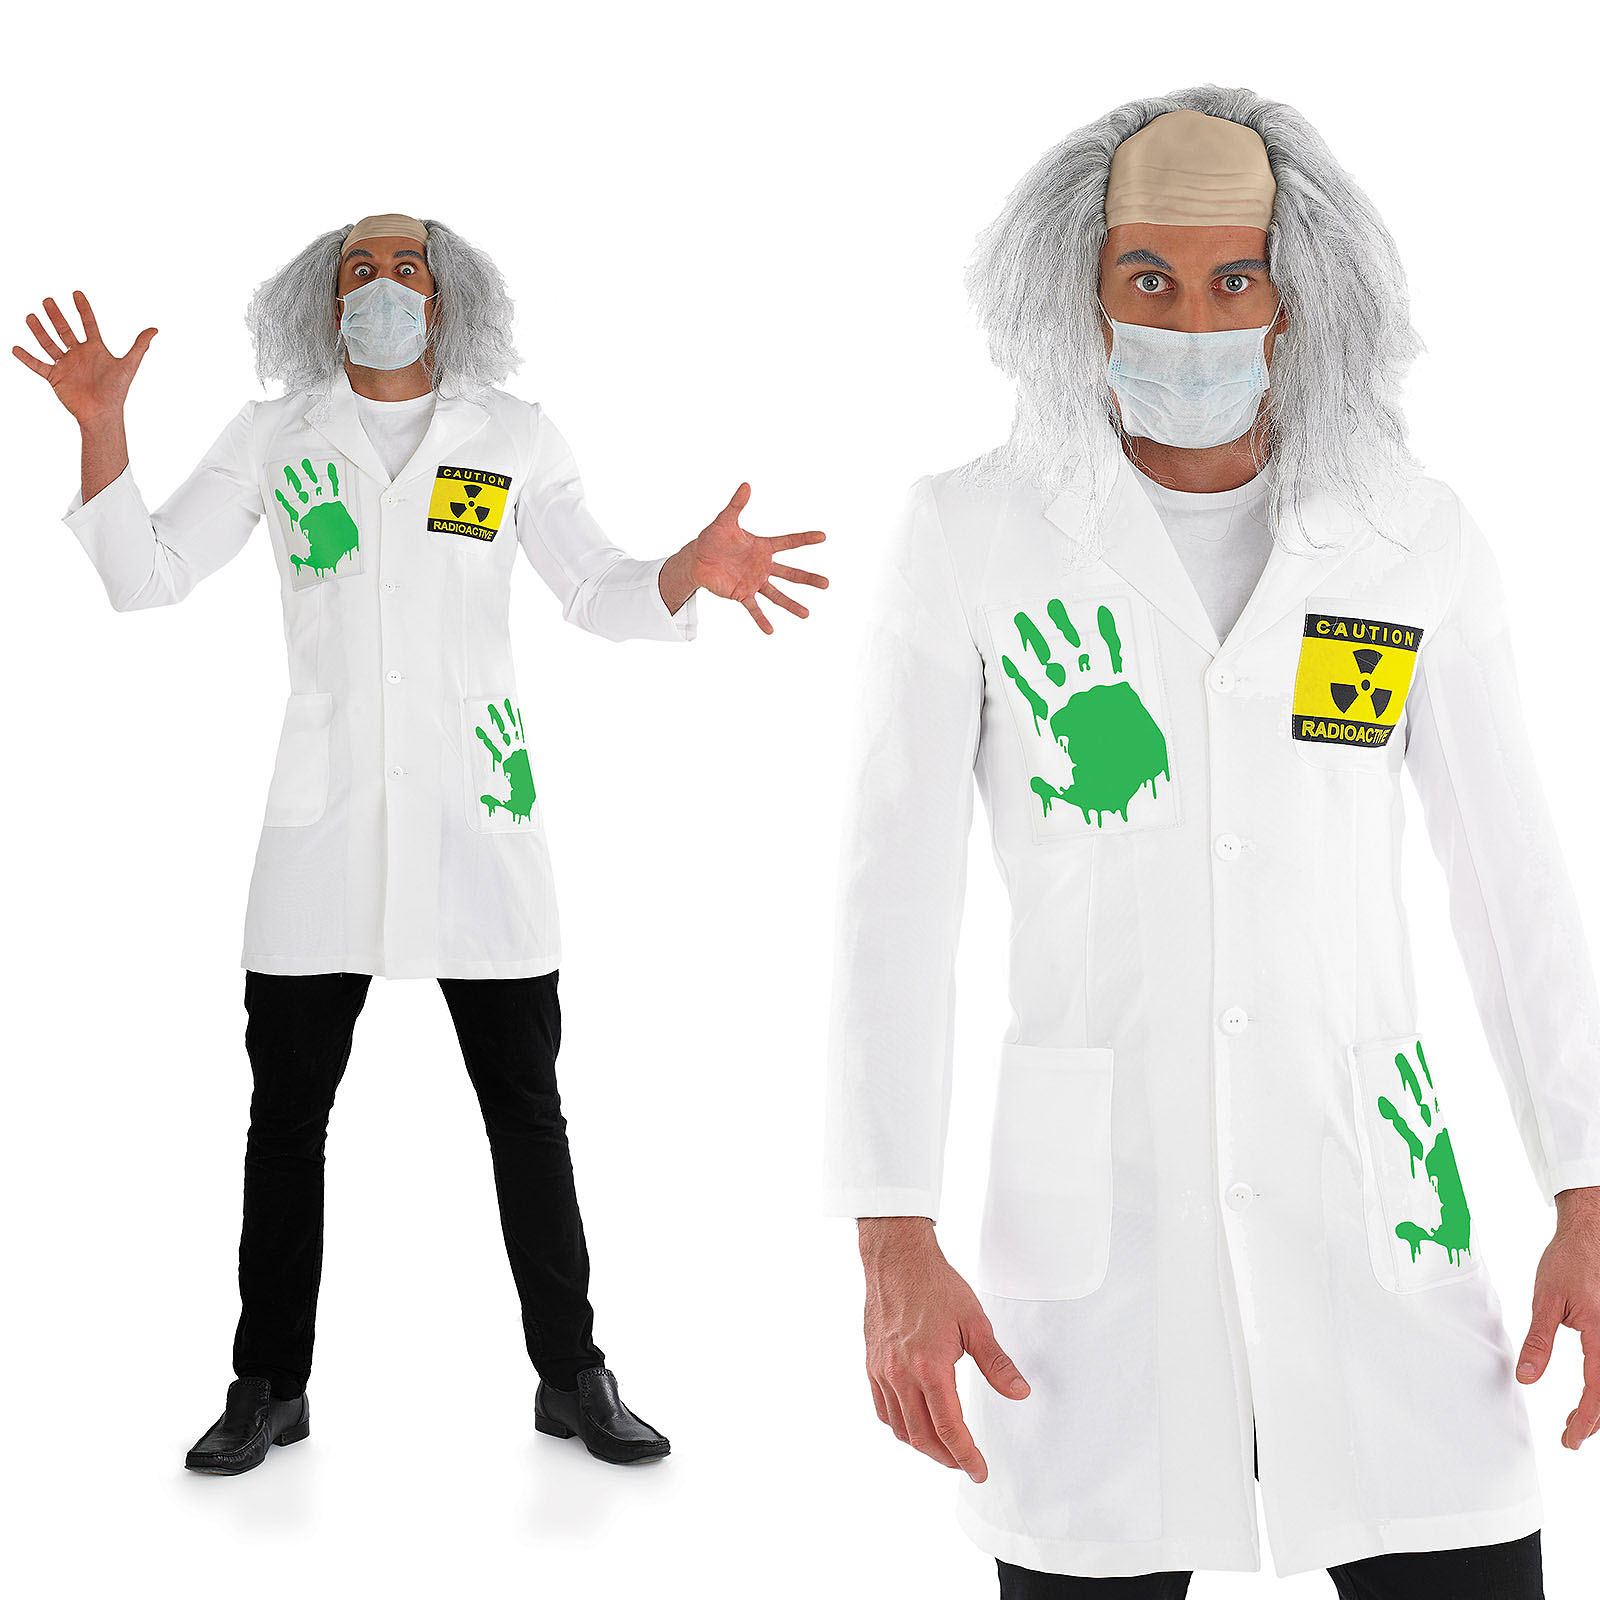 mens mad scientist fancy dress costume light up labcoat halloween